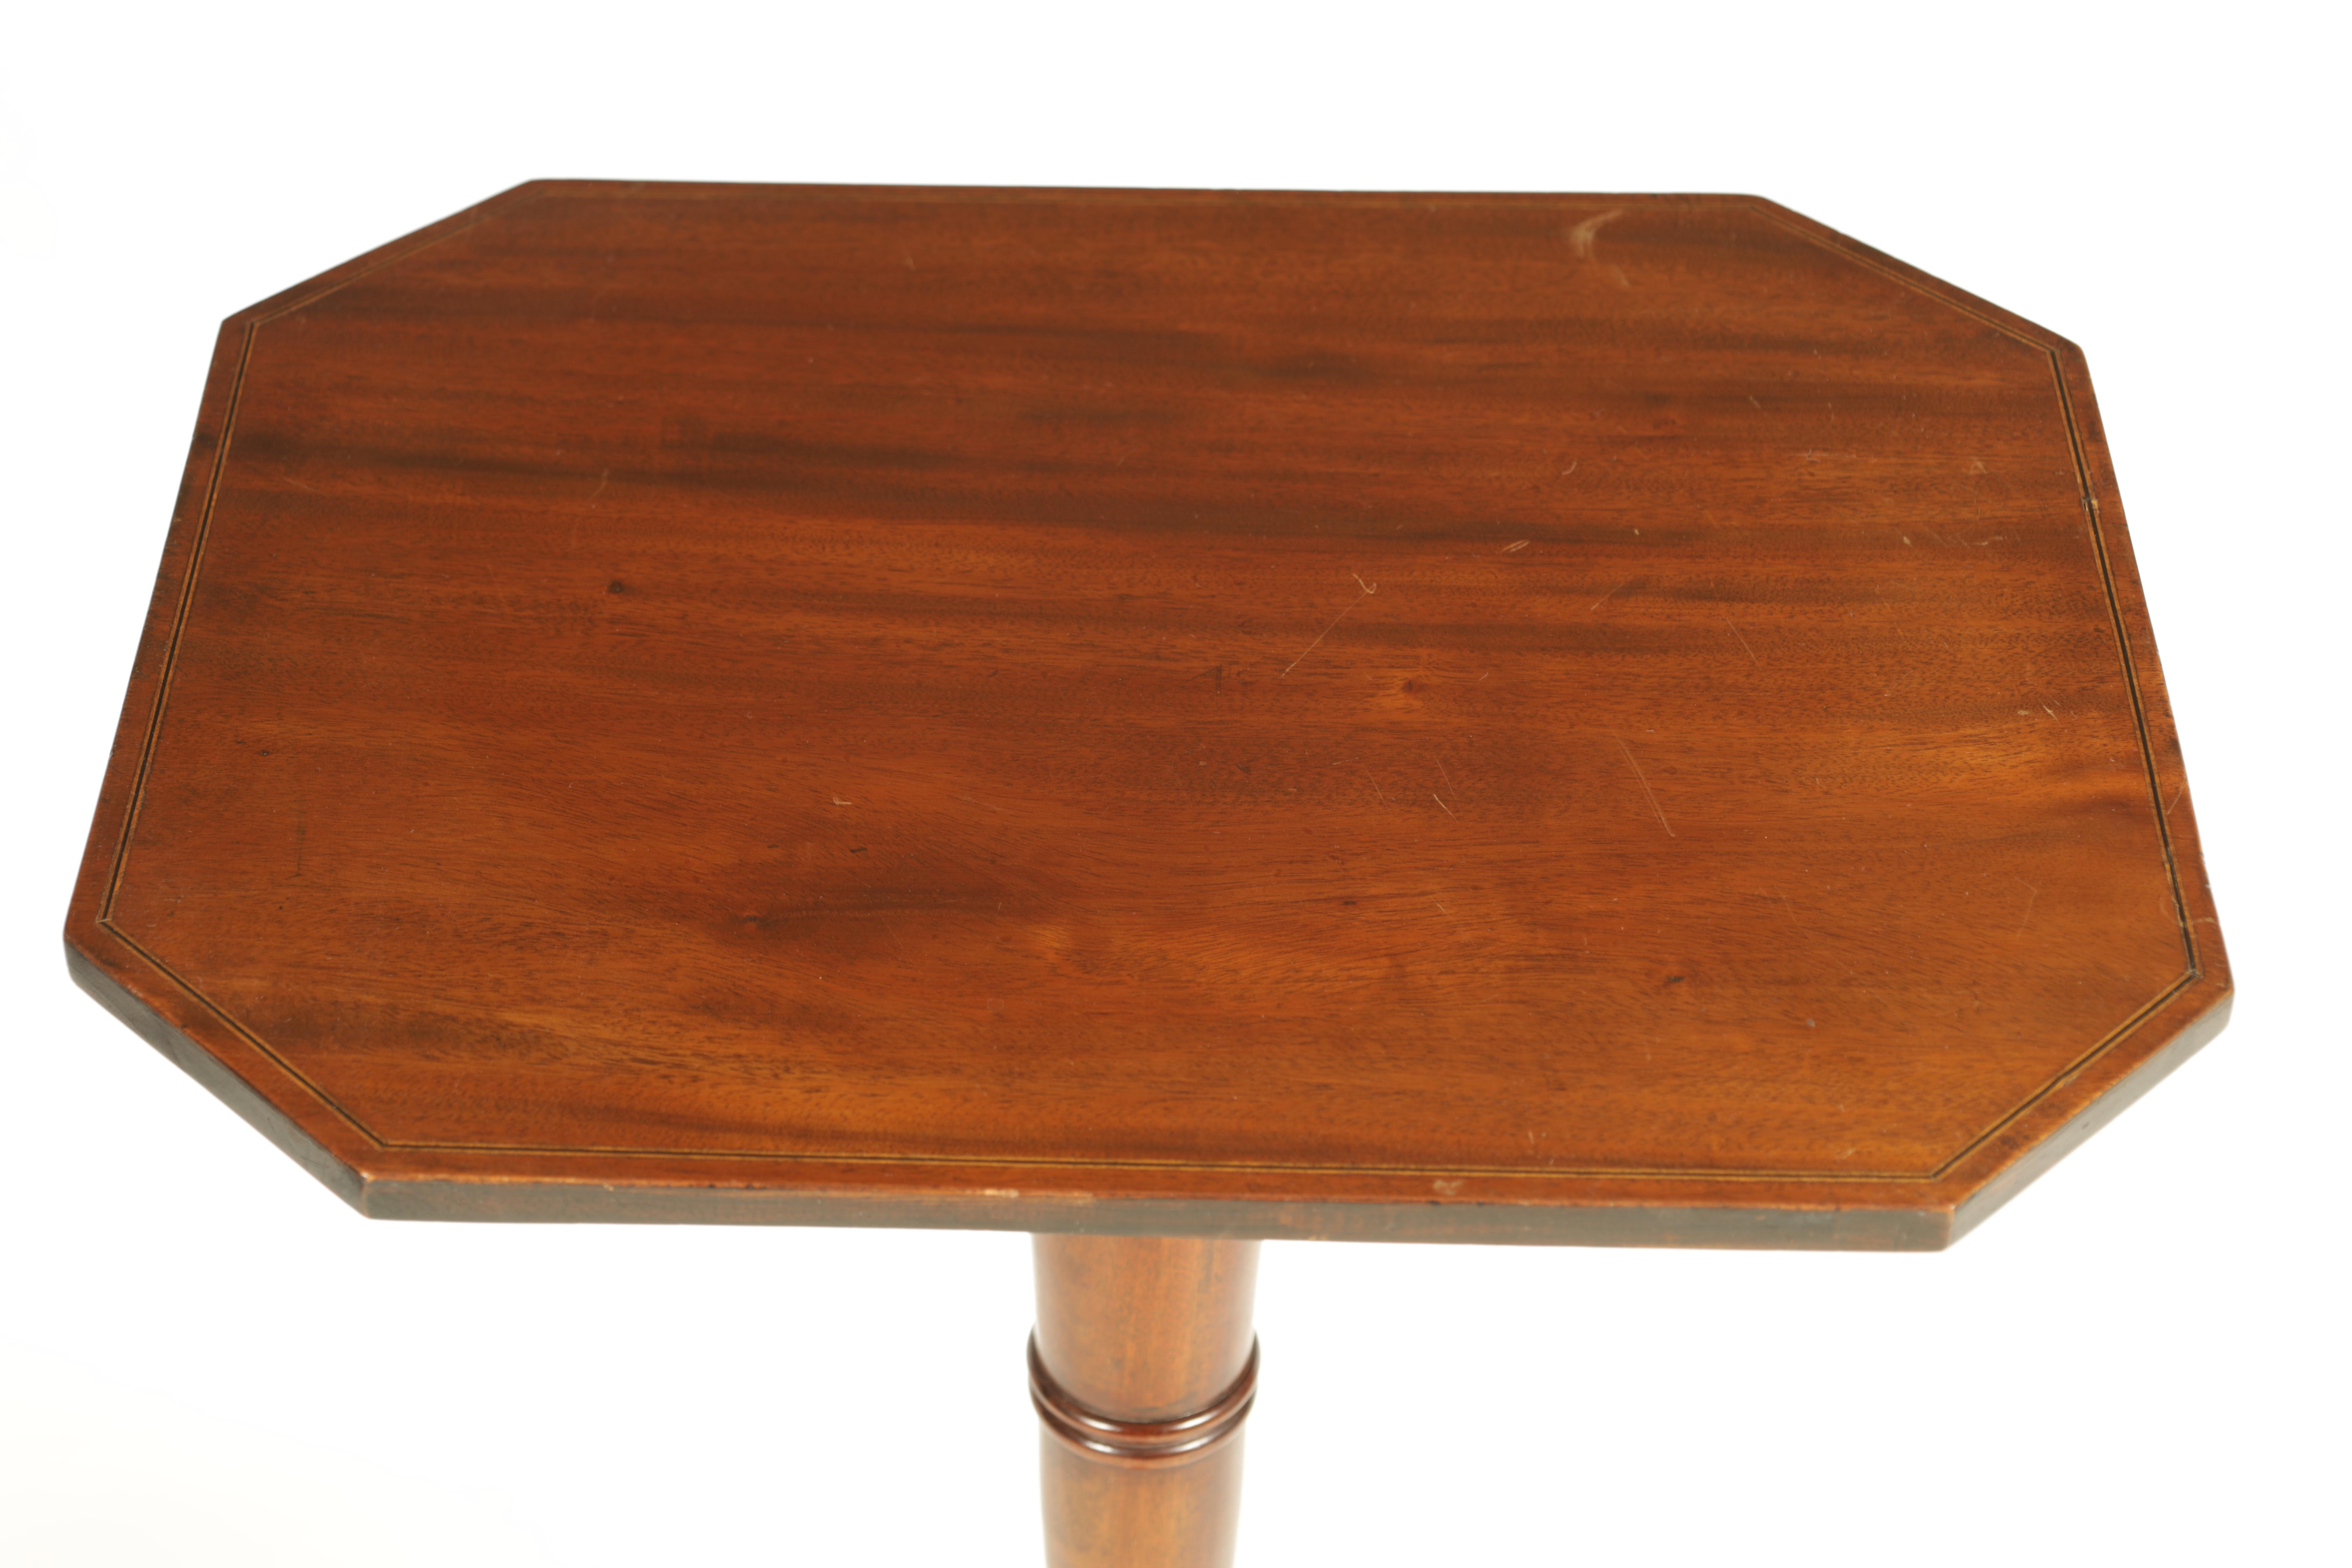 A REGENCY MAHOGANY ADJUSTABLE OCCASIONAL/READING TABLE with clipped corners and tilting top, - Image 3 of 9